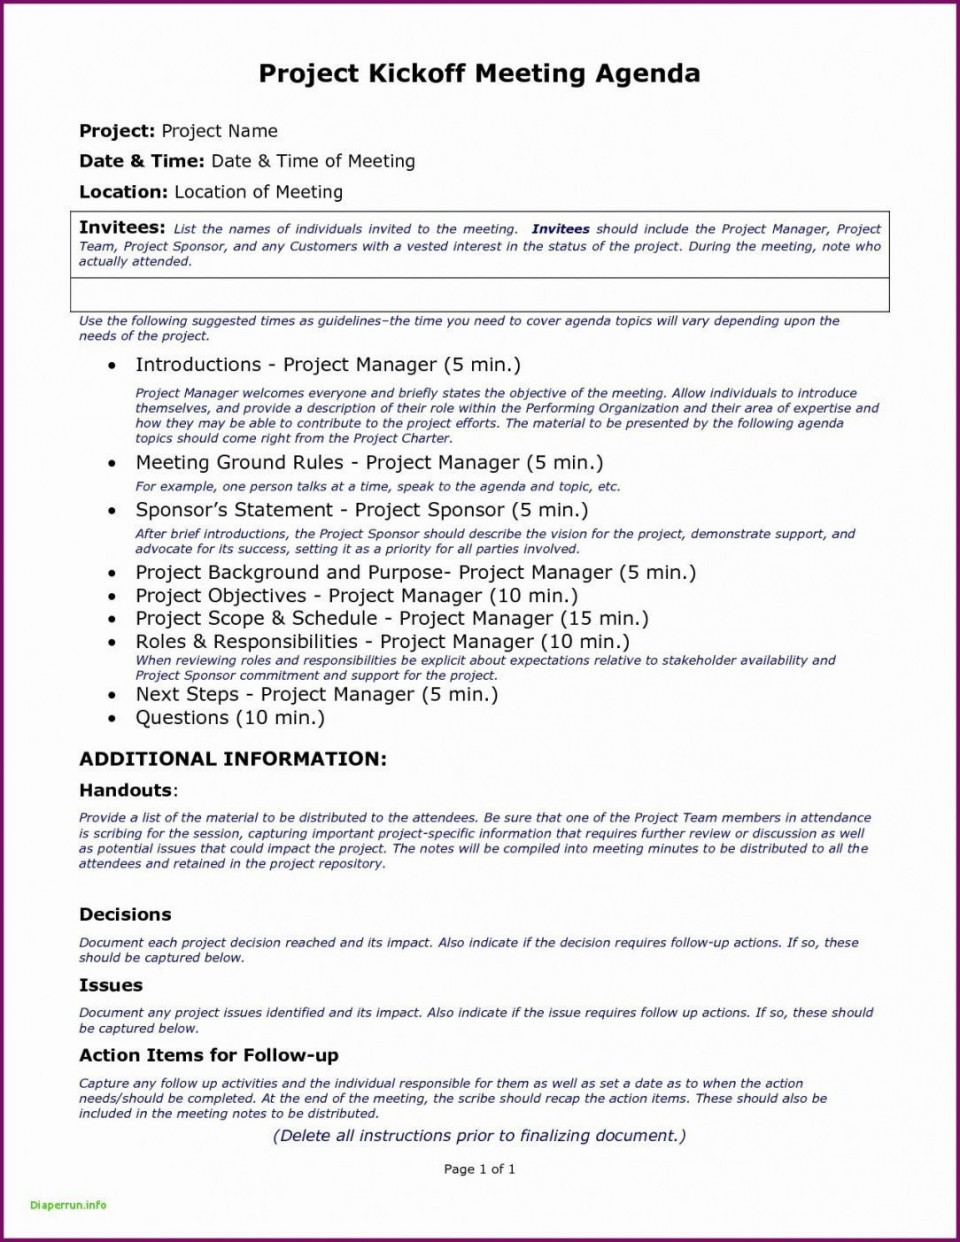 007 Staggering Project Management Kickoff Meeting Agenda Template Highest Quality 960